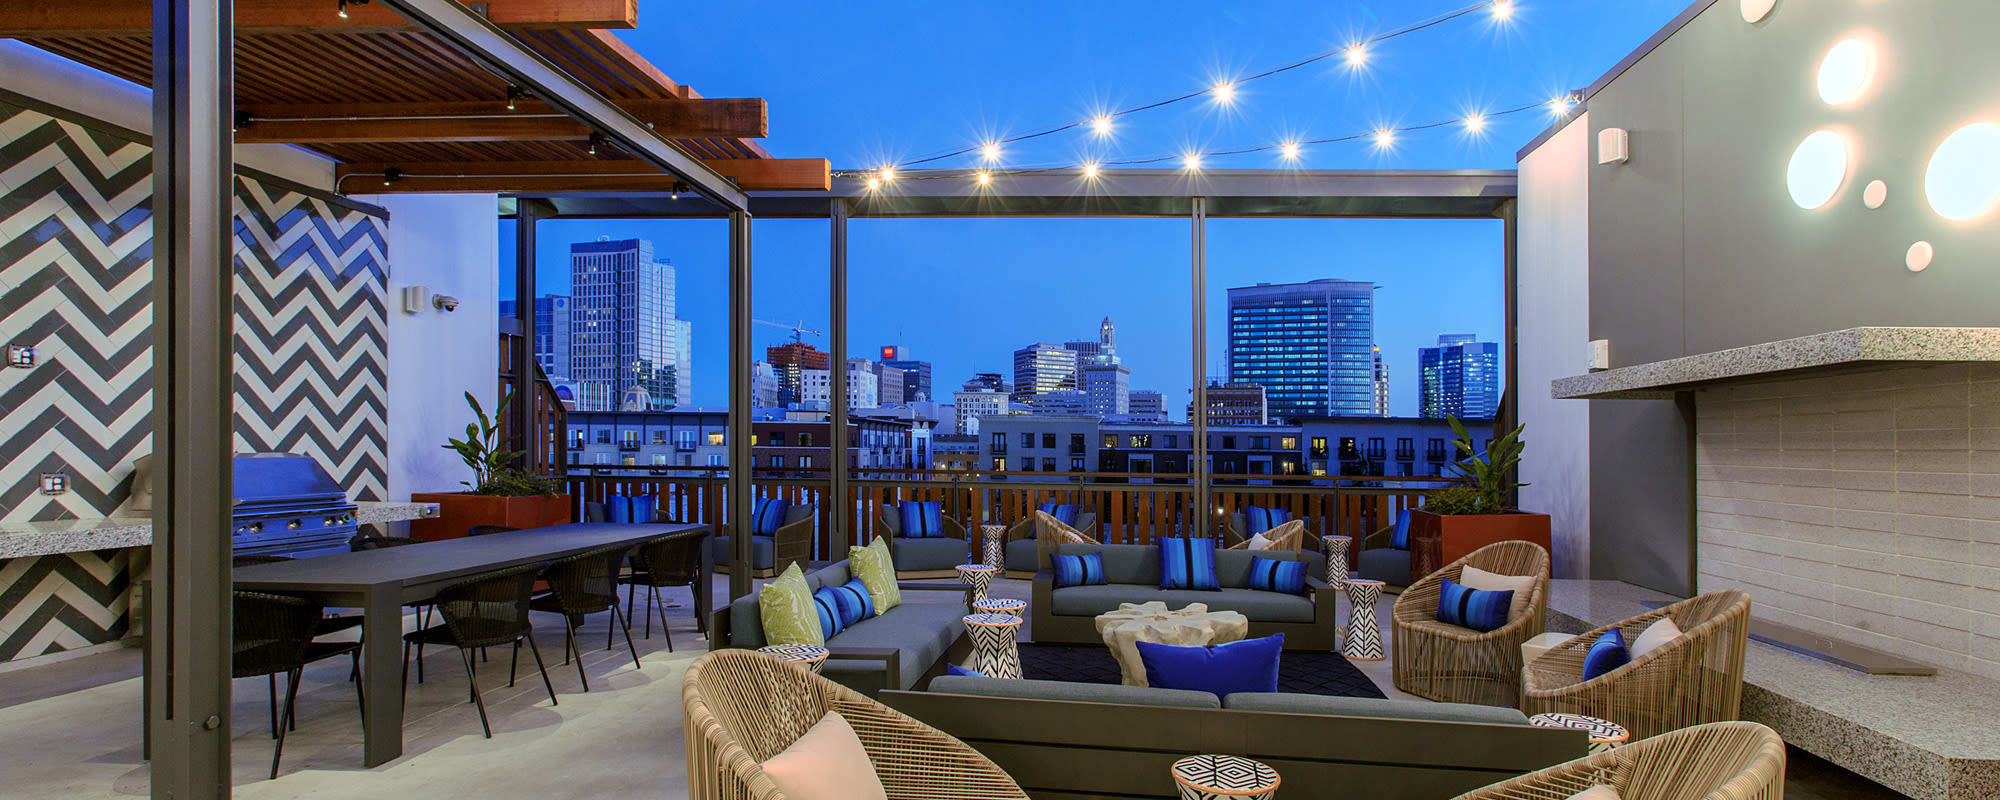 Rooftop terrace with amazing views of Oakland